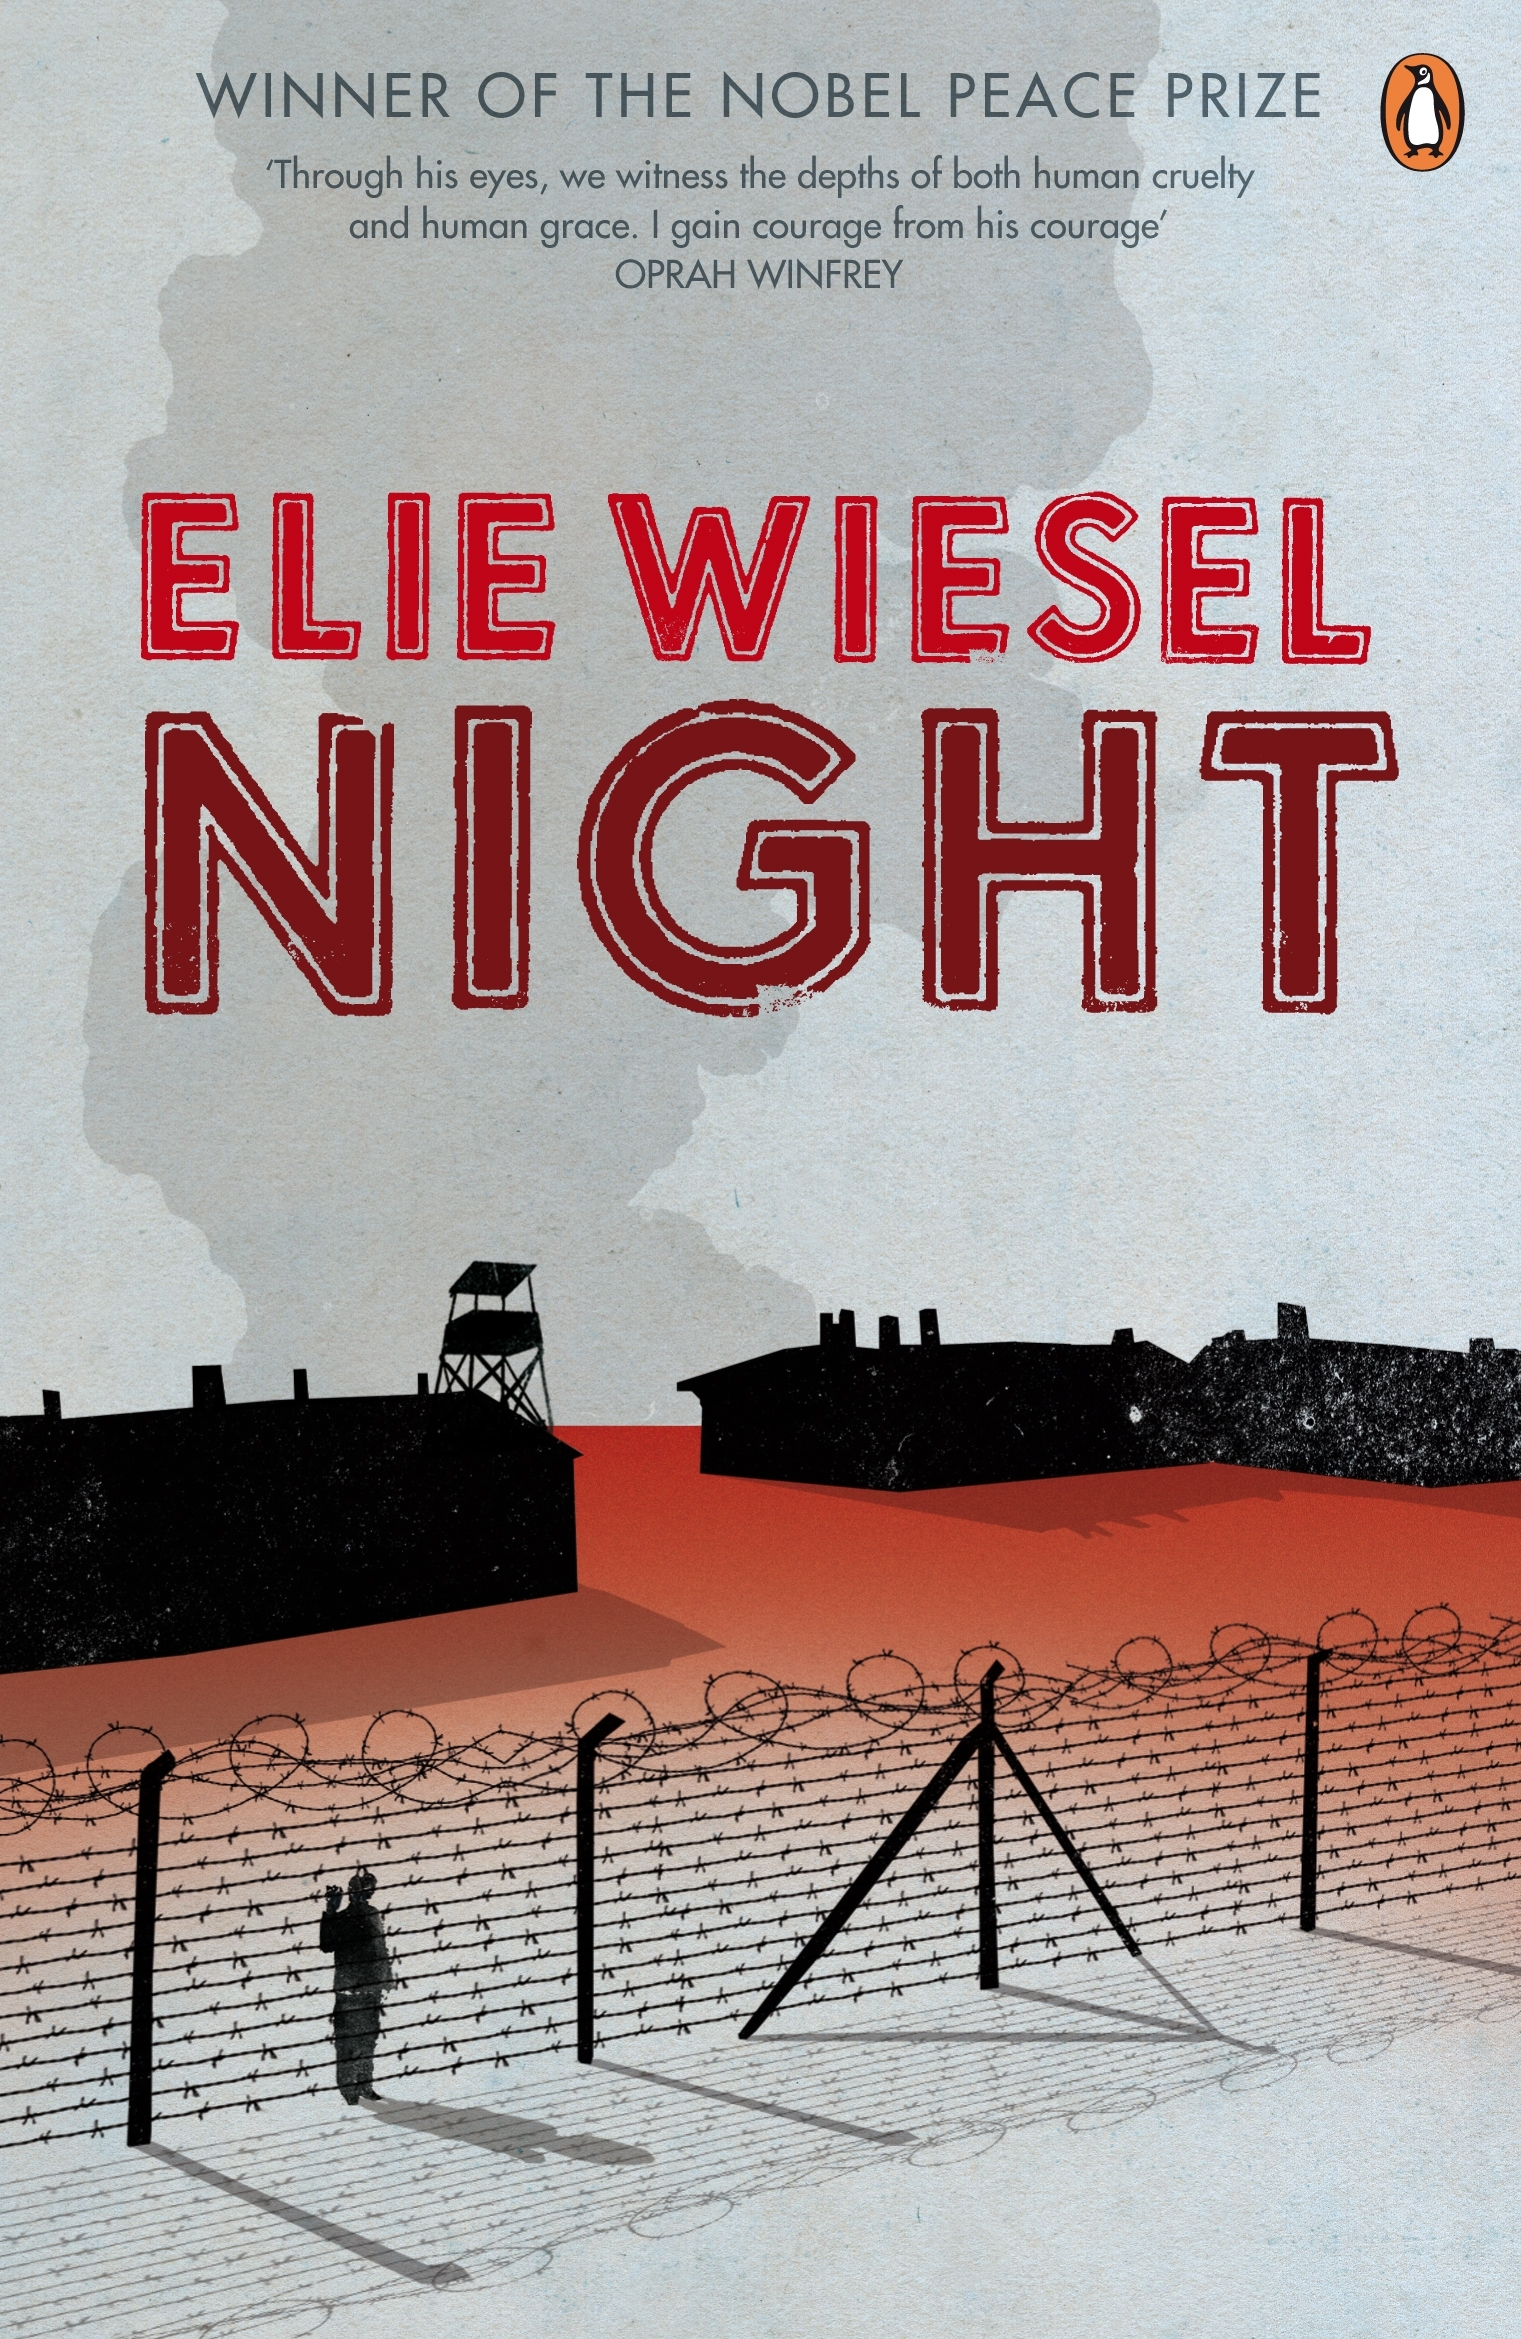 elie wiesel essay loss faith night elie wiesel essay loss faith